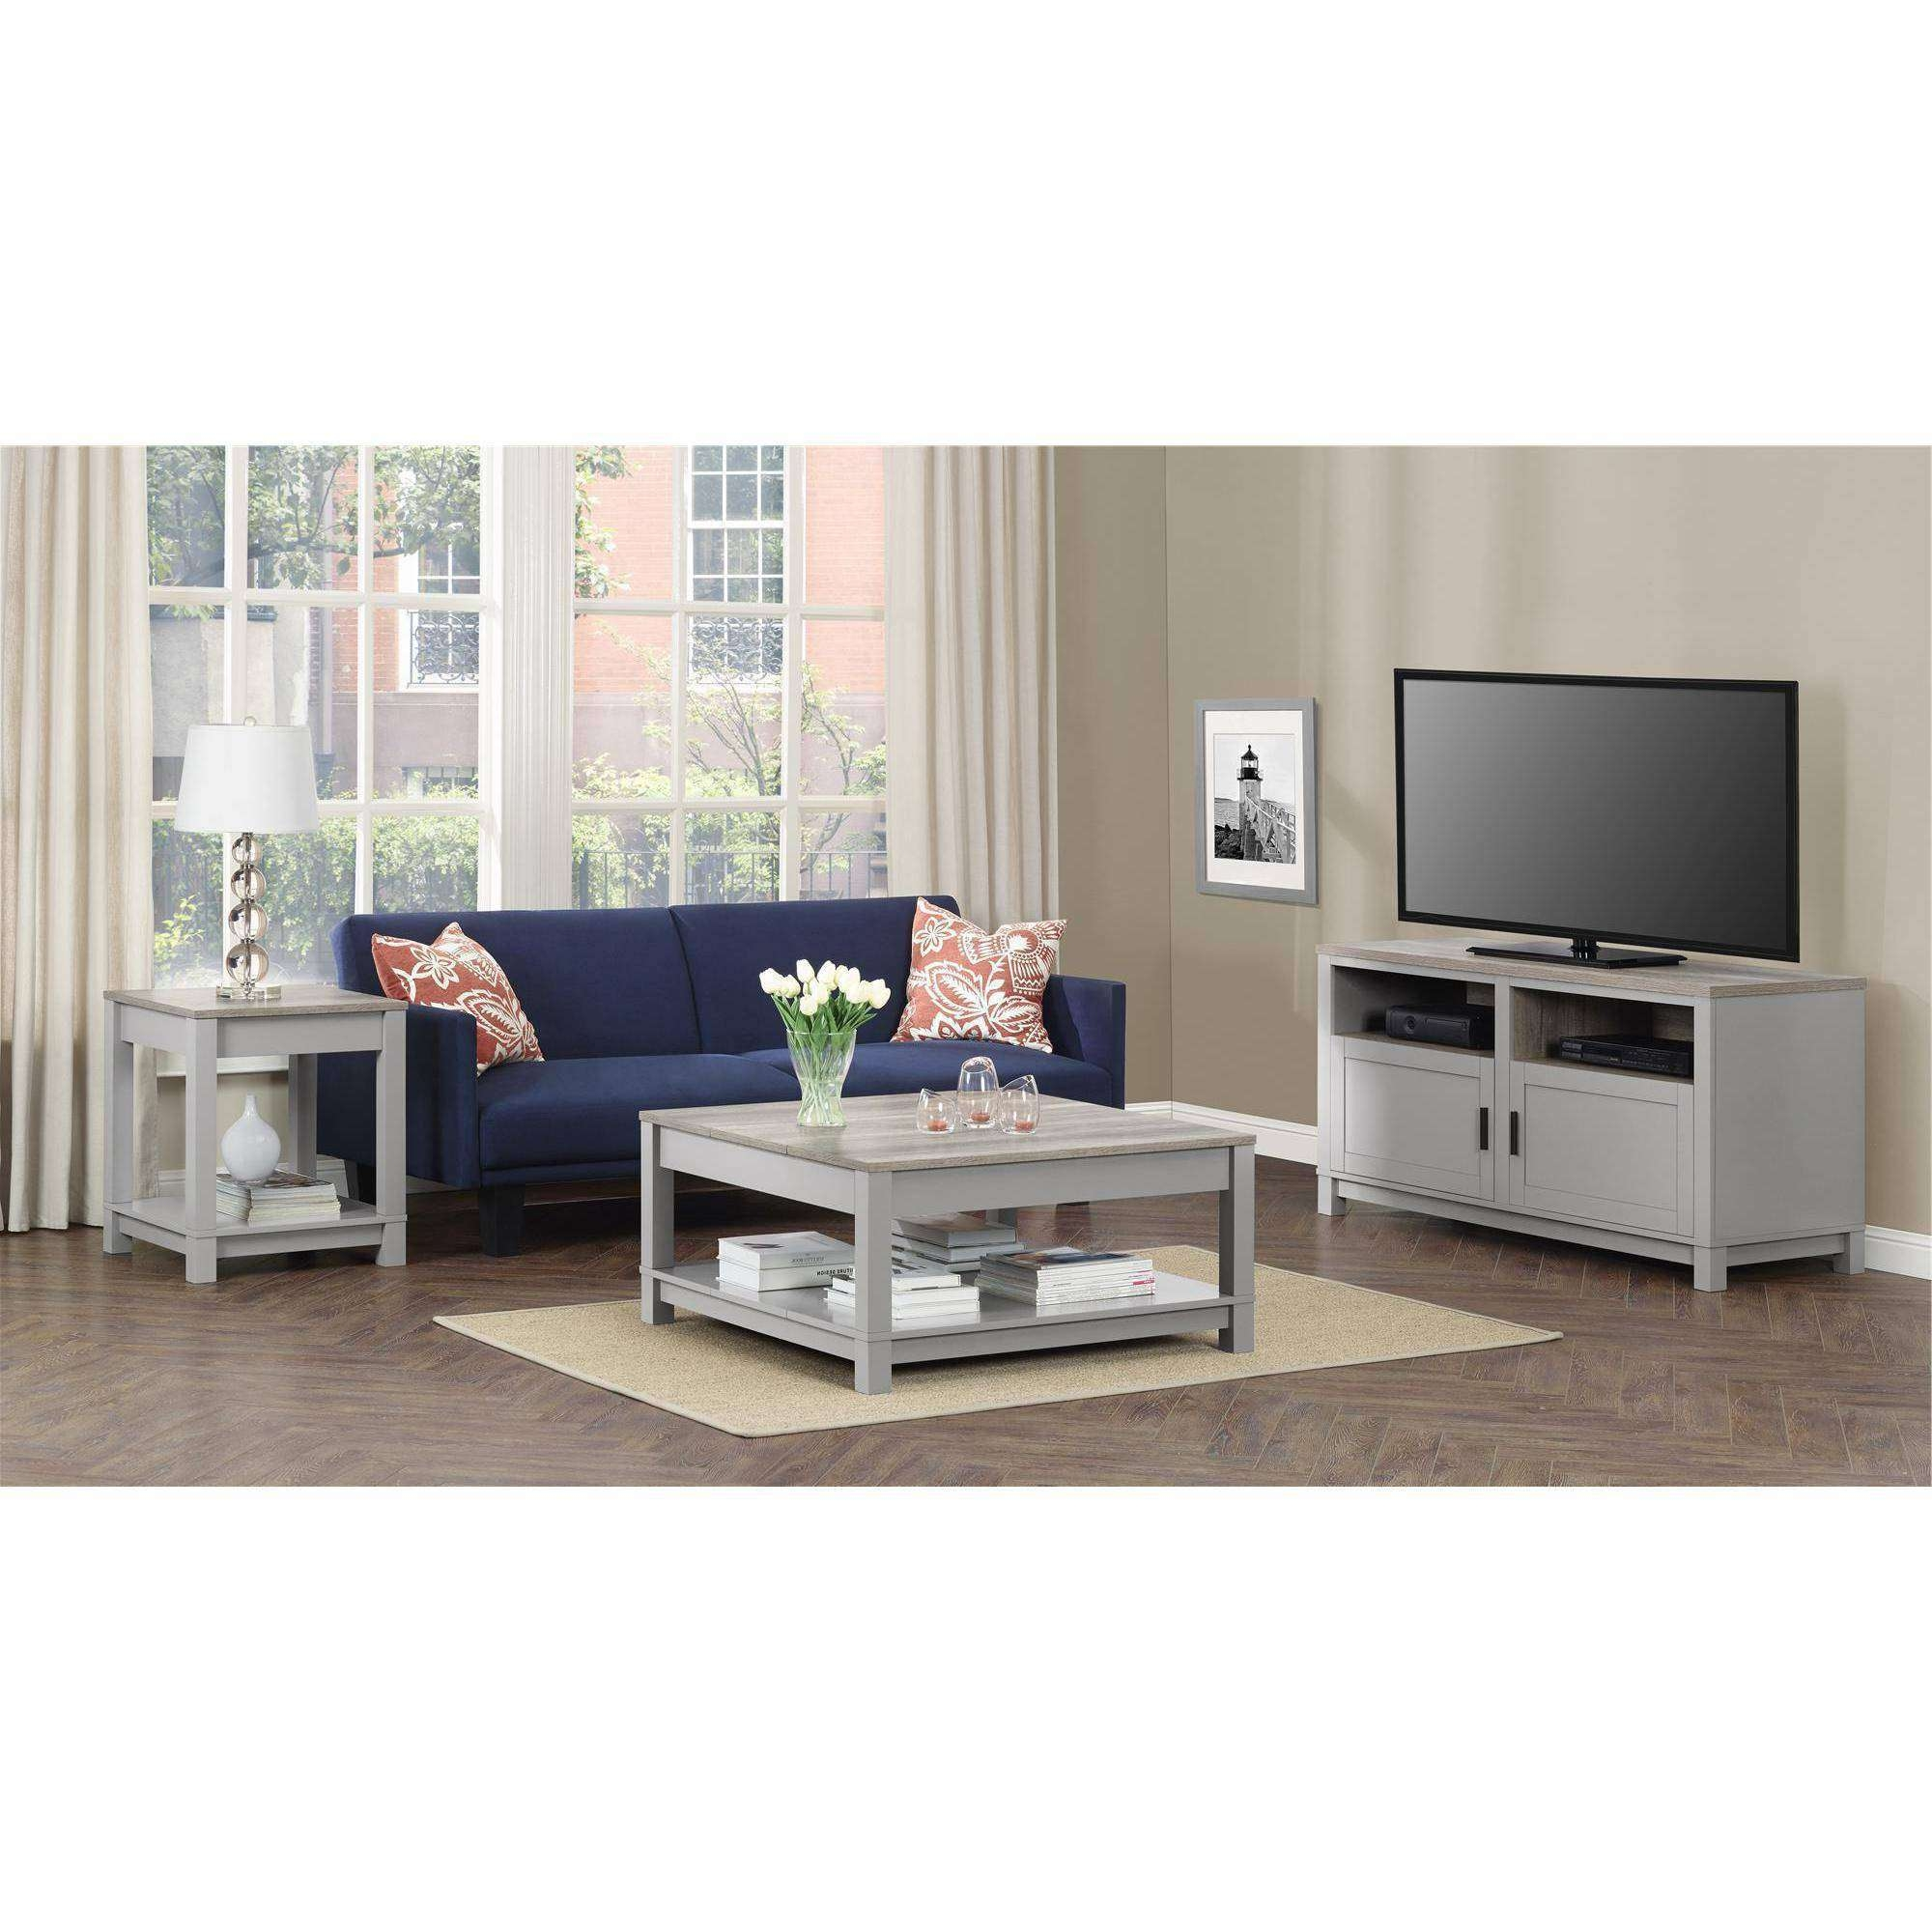 Coffee Tables : Black And White Paint Glass Coffee Table Living With Regard To Famous Coffee Table And Tv Unit Sets (View 11 of 20)